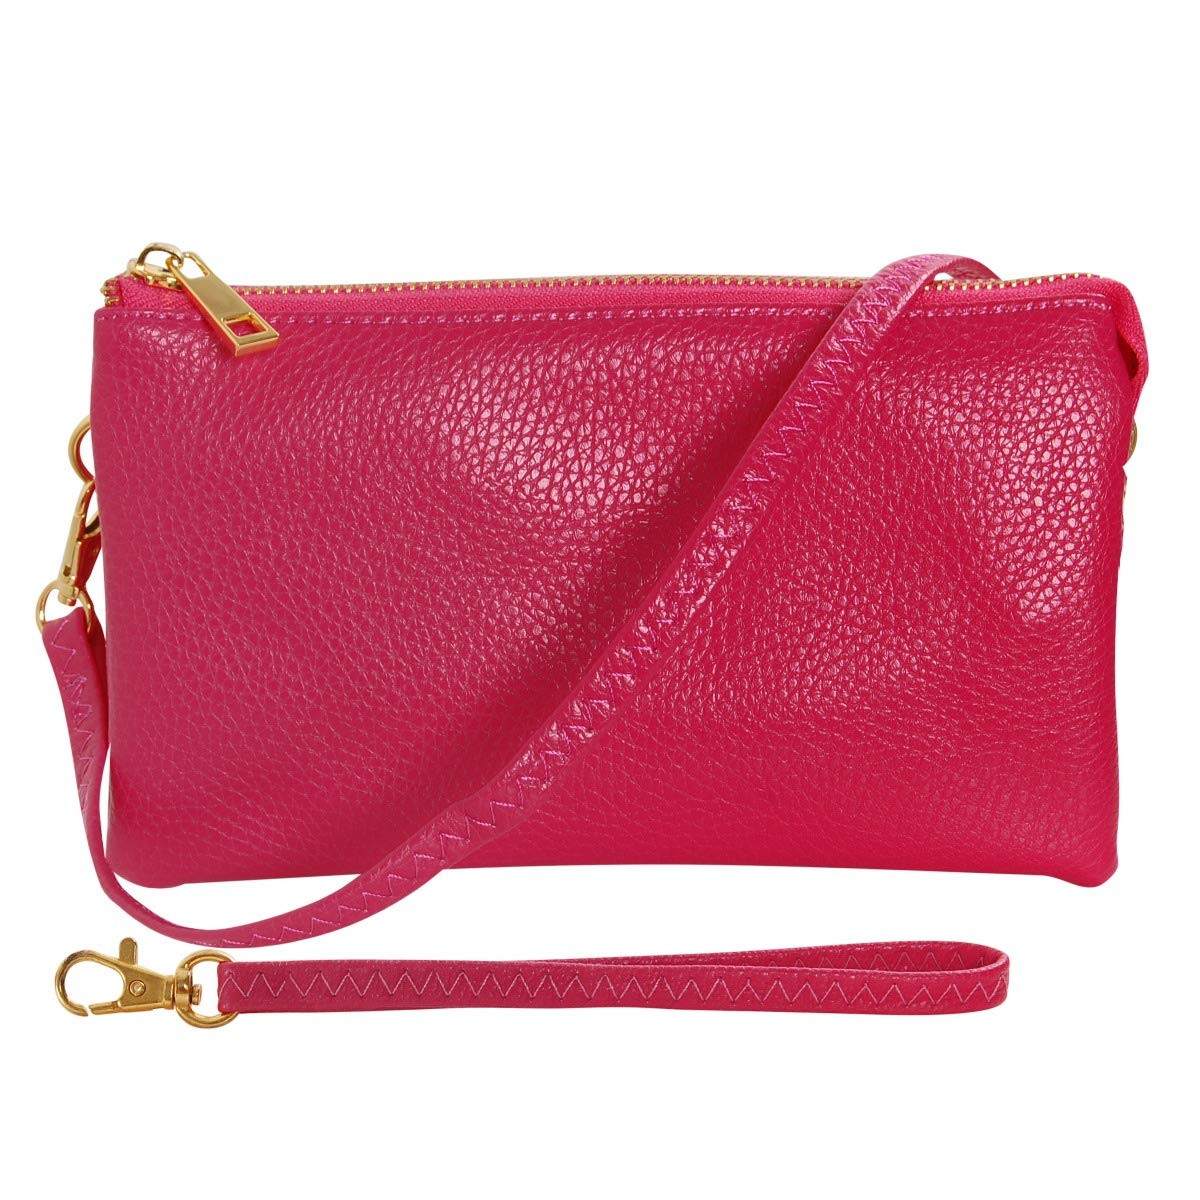 Humble Chic Vegan Leather Wristlet Clutch or Small Purse Crossbody Bag Includes Adjustable Shoulder and Wrist Straps